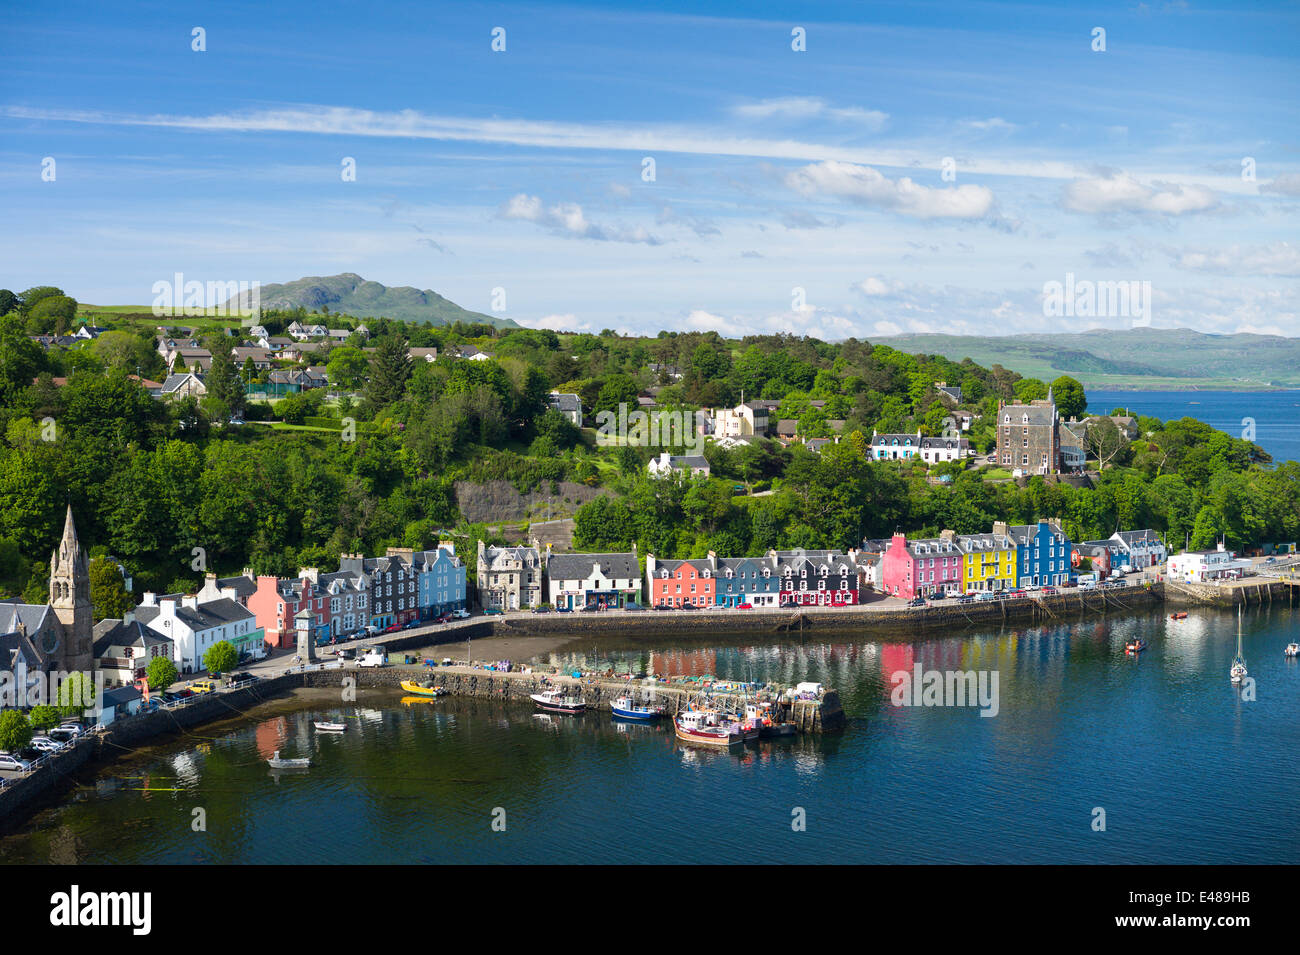 Multi-coloured buildings on the waterfront at Tobermory the capital city of the Isle of Mull in the Inner Hebrides - Stock Image